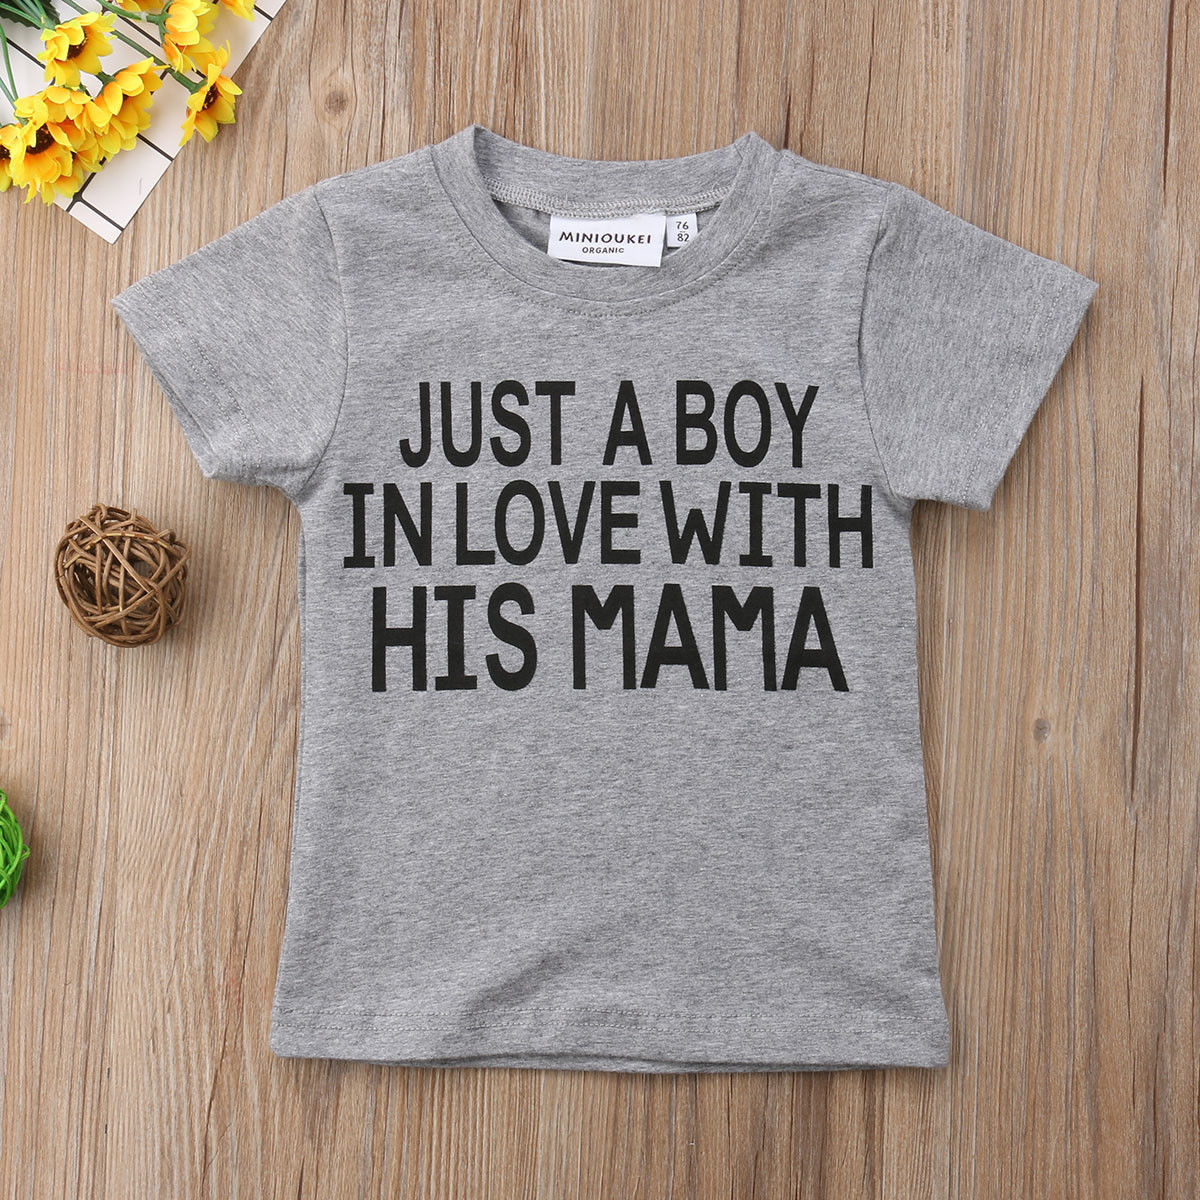 T-Shirts Tops Short-Sleeve Toddler Baby-Girl-Boy Kids Letter Gray Summer Casual Tee